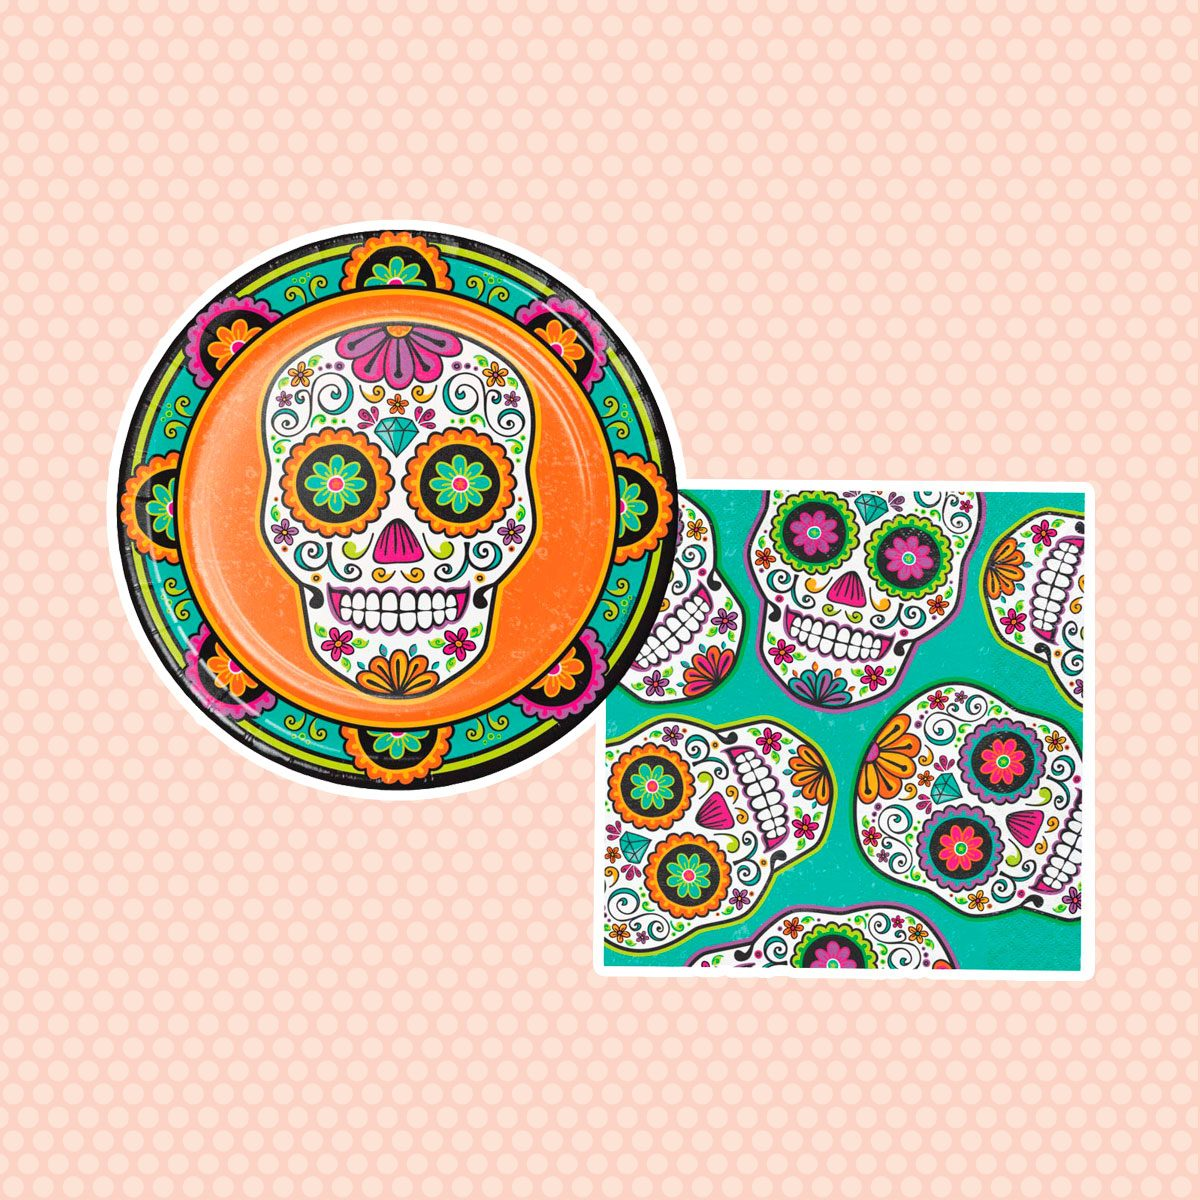 Day of the Dead Plates & Napkins